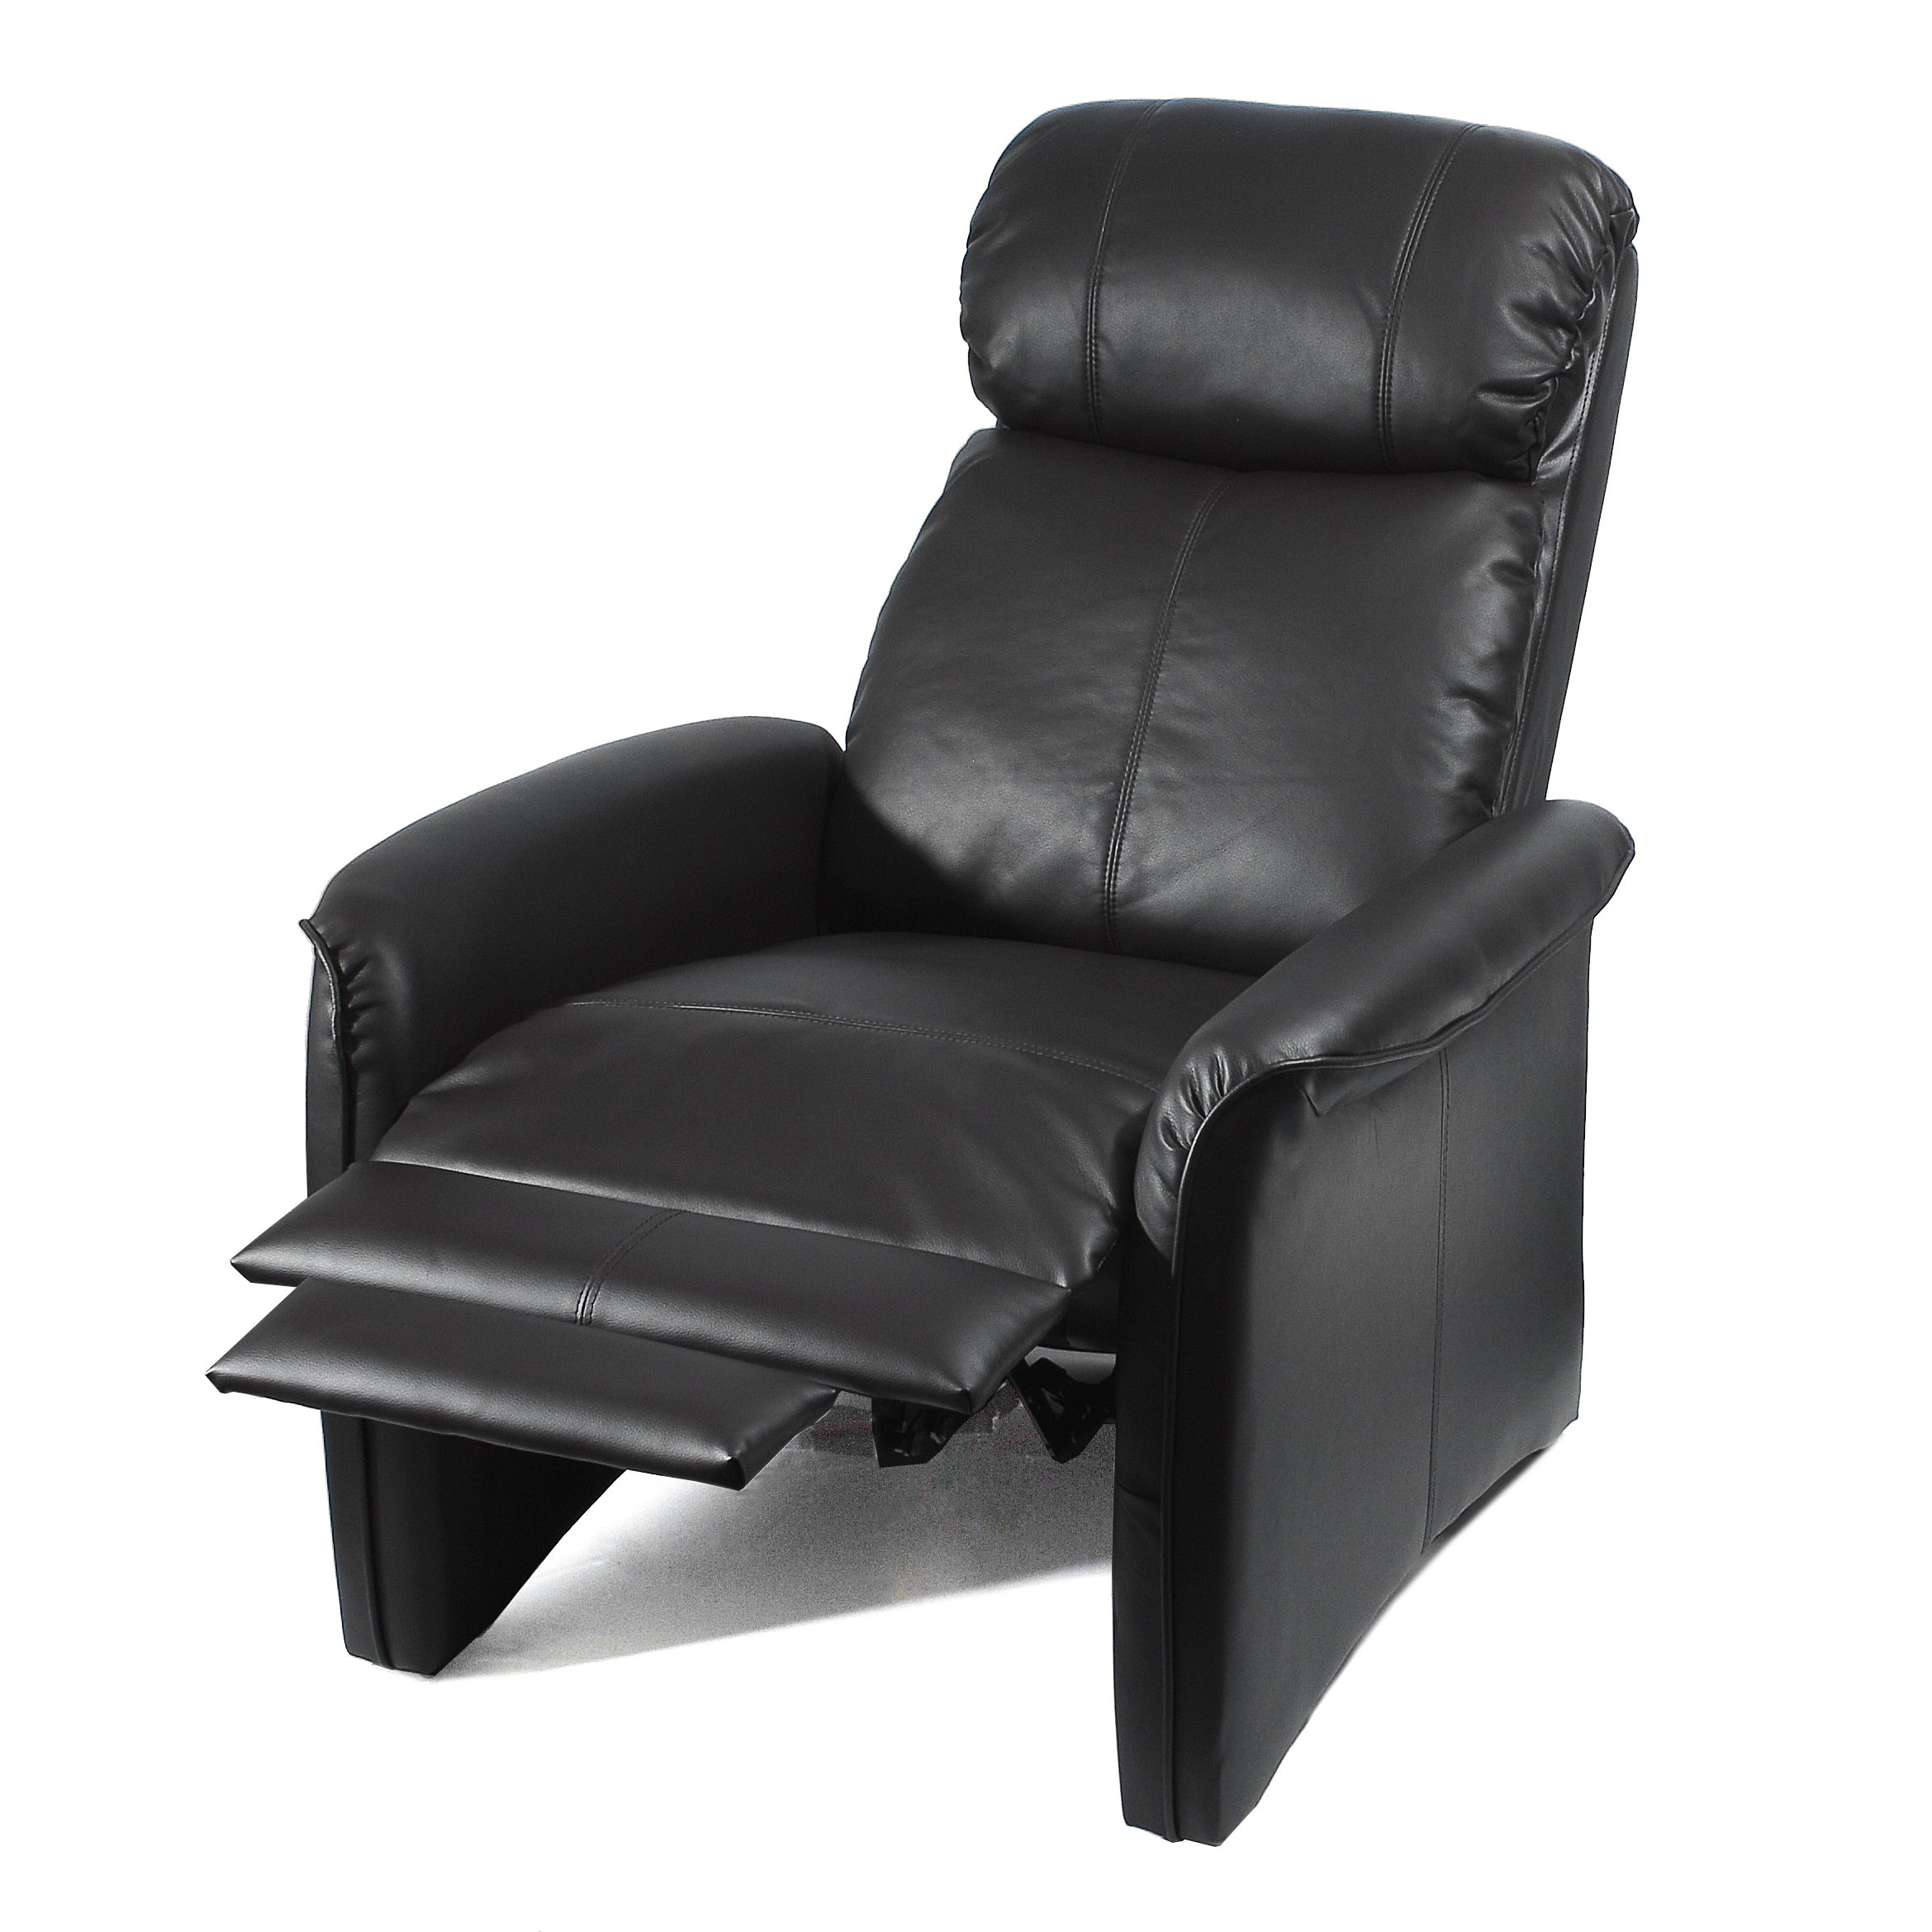 ivory leather office chair fairfield home soft pad recliner 3 positional cozy